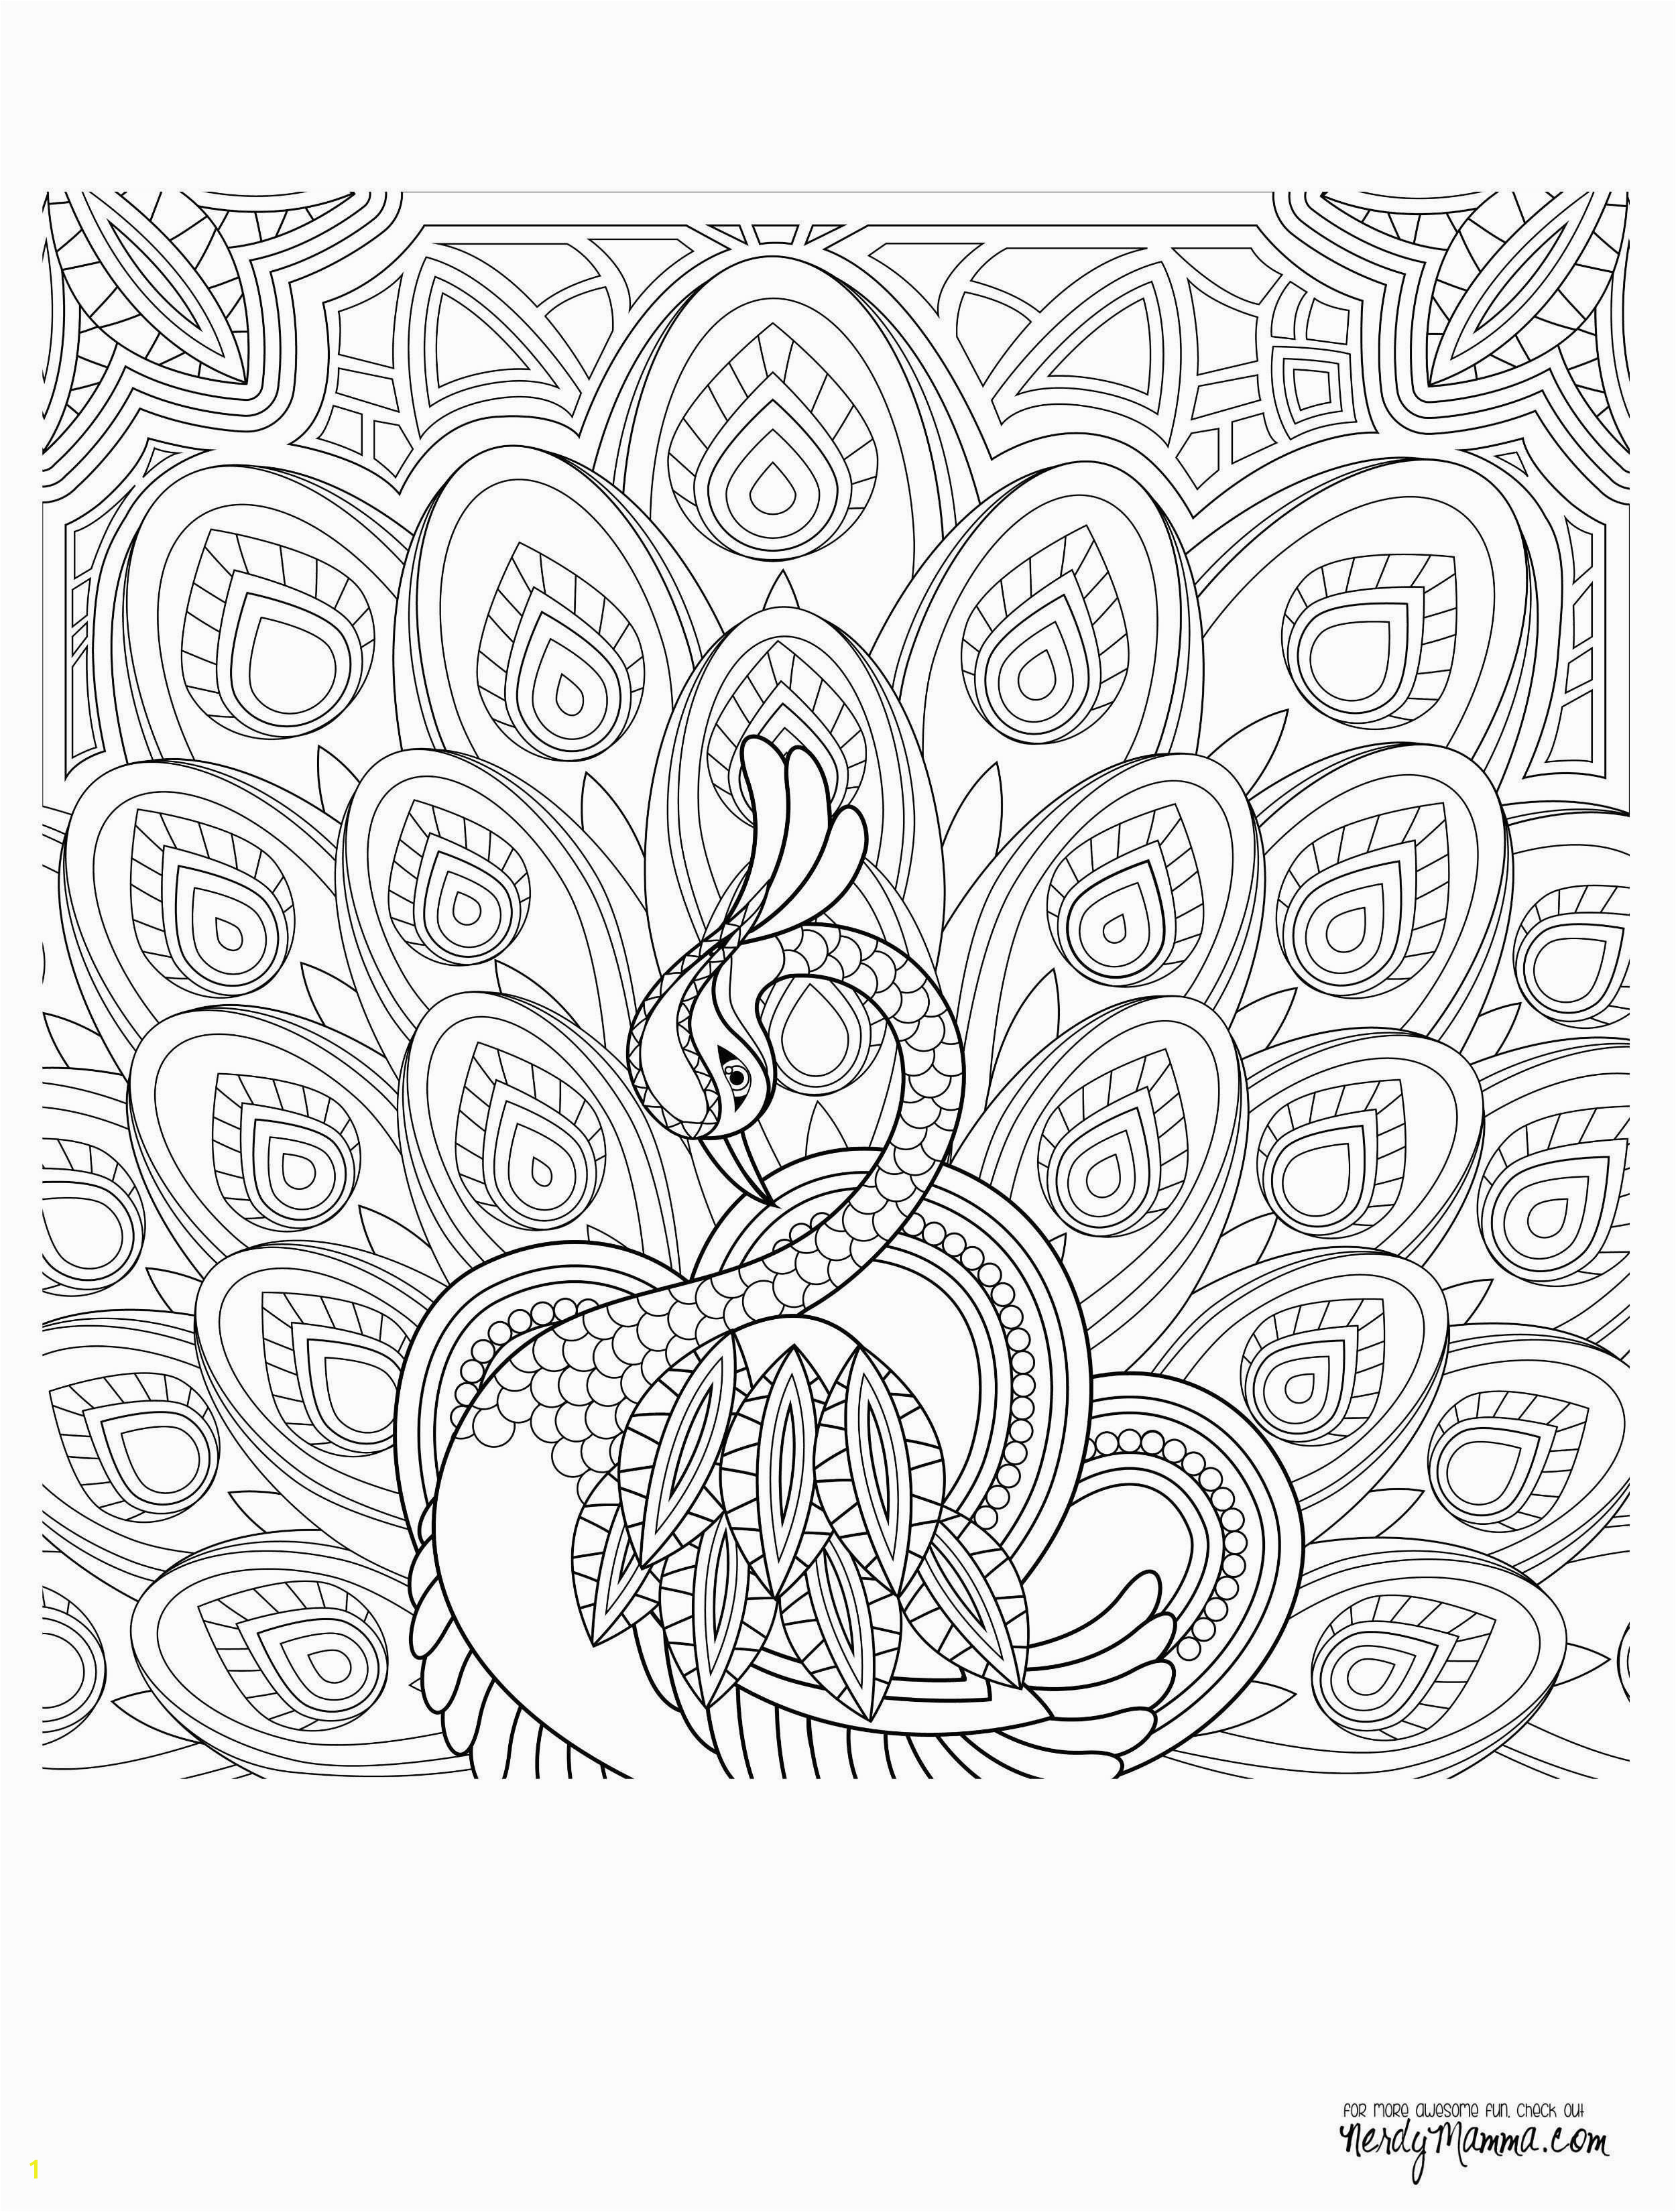 Doodle Coloring Pages Awesome Mal Coloring Pages Fresh Crayola Pages 0d – Voterapp Avaboard Doodle